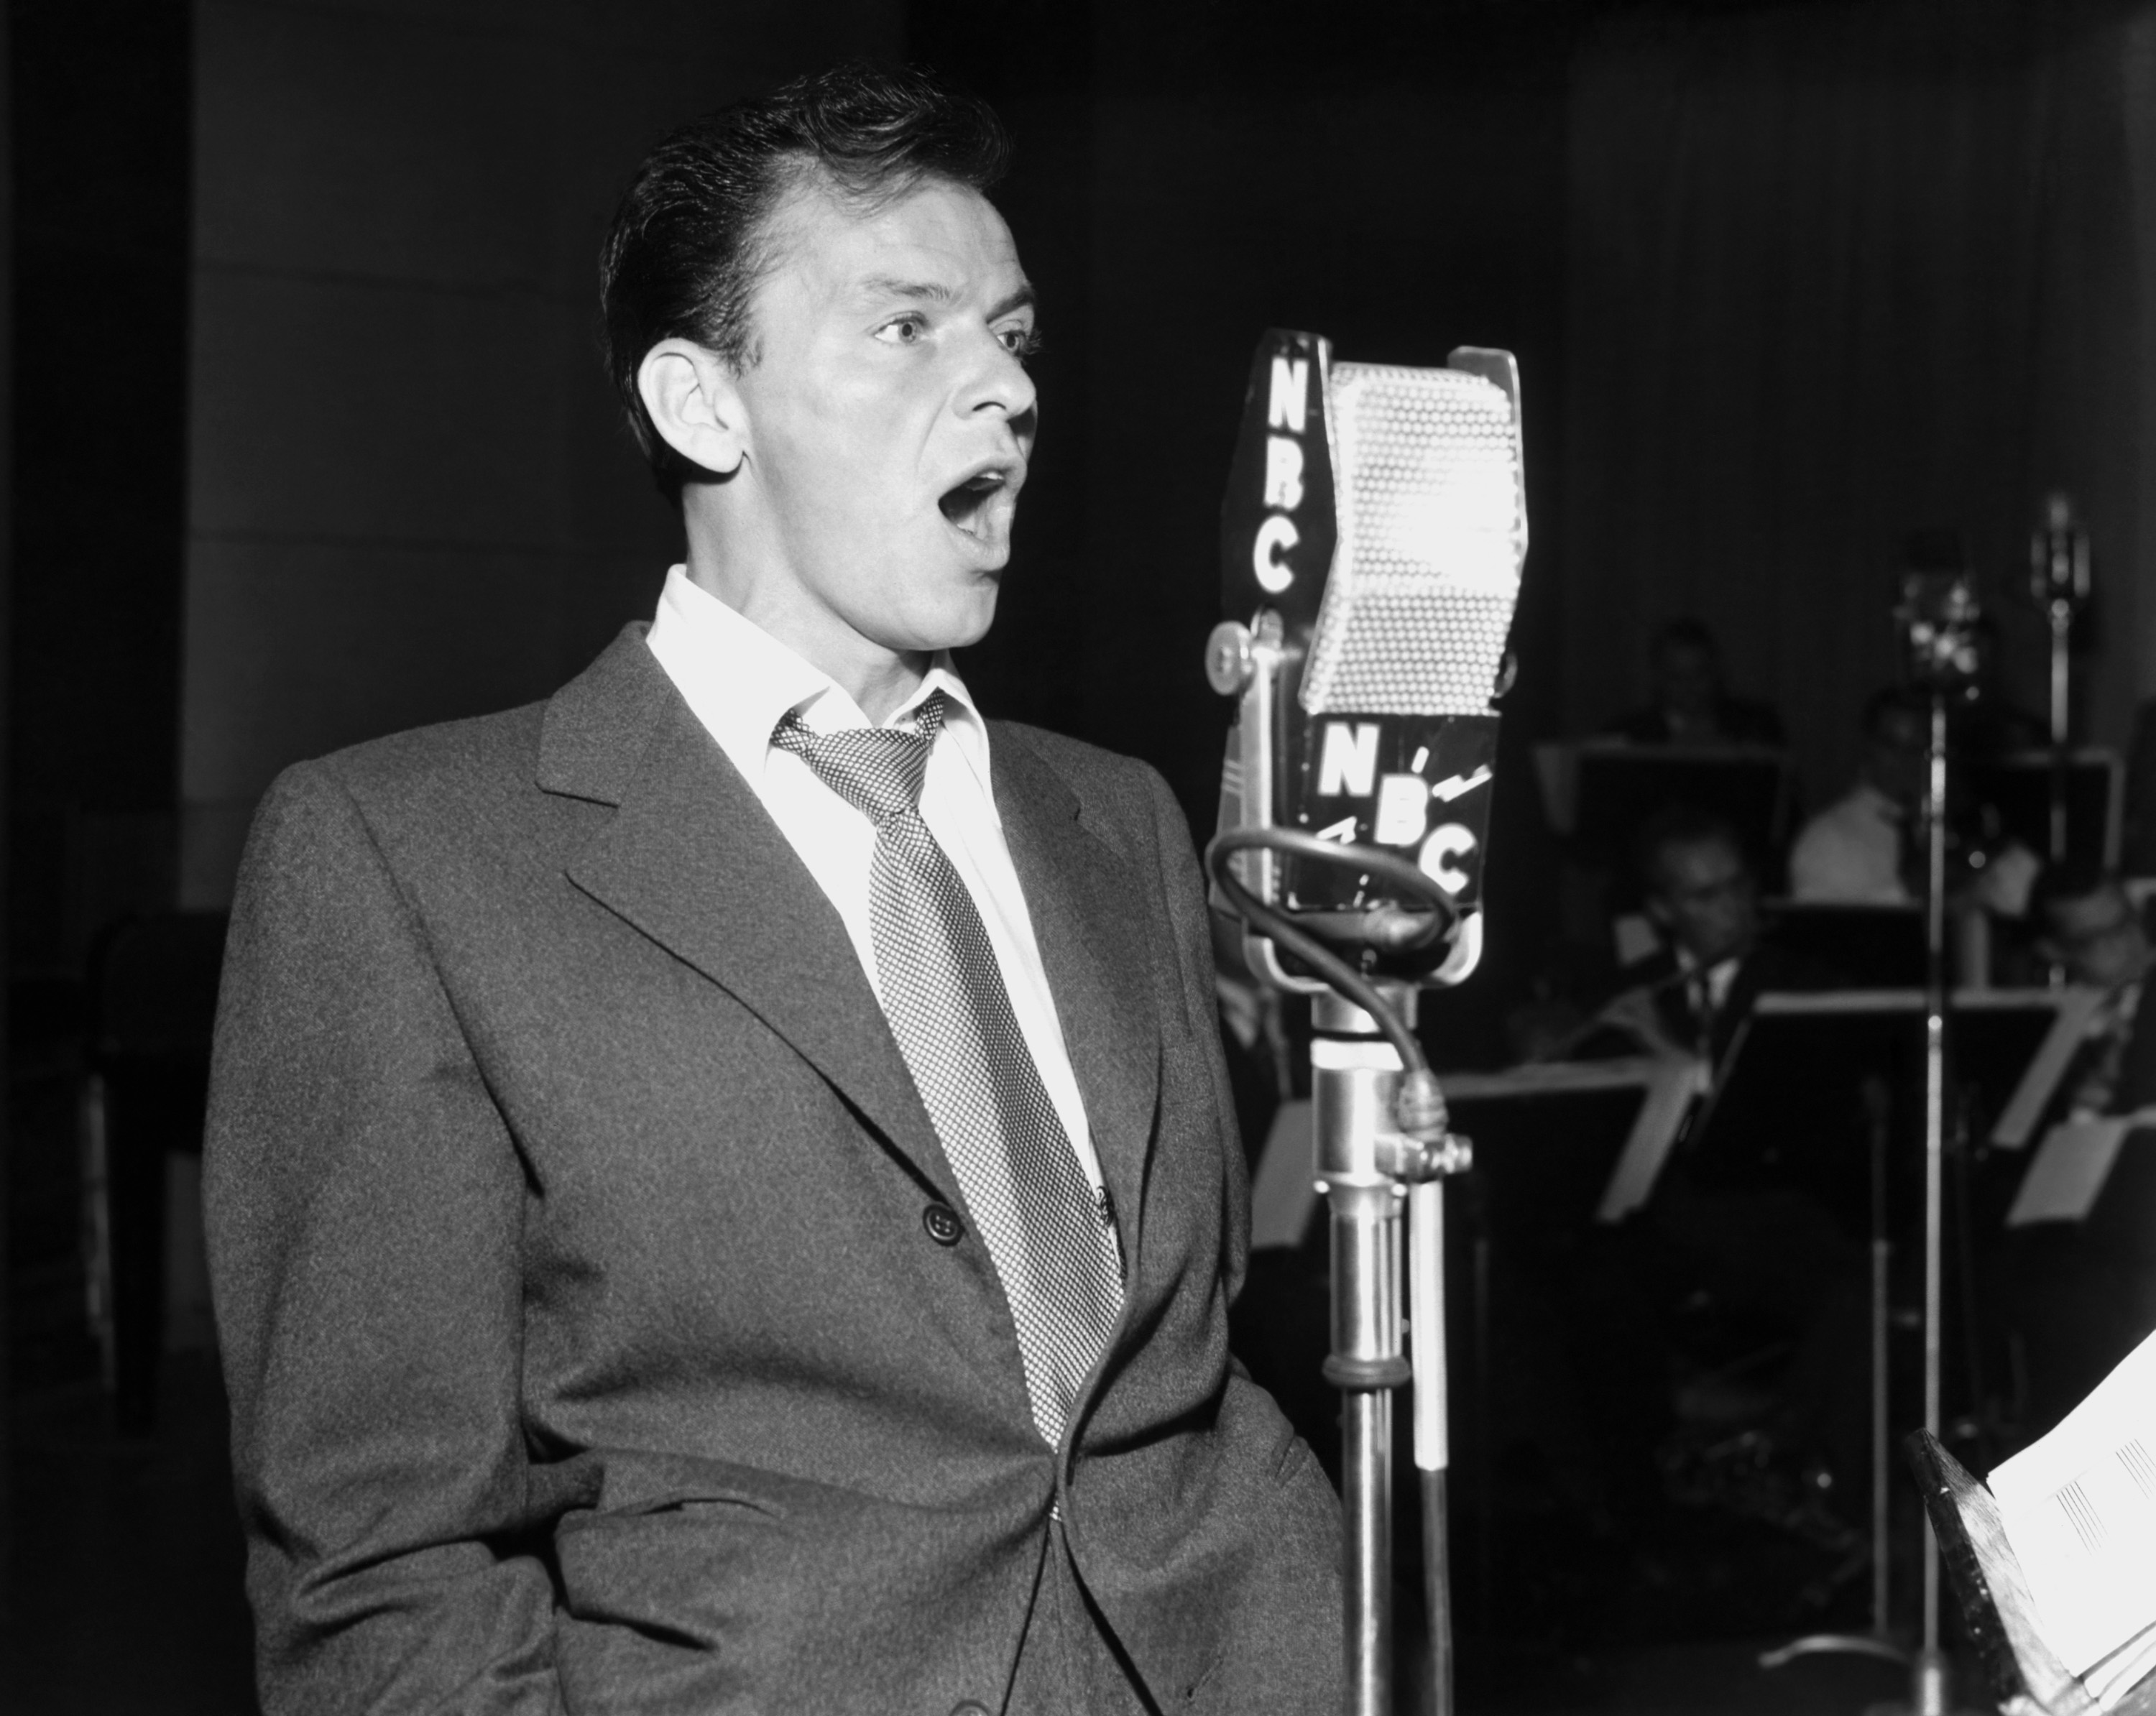 Caption: LIGHT UP TIME -- 1949 -- Pictured: Frank Sinatra, Credit: NBC/Getty